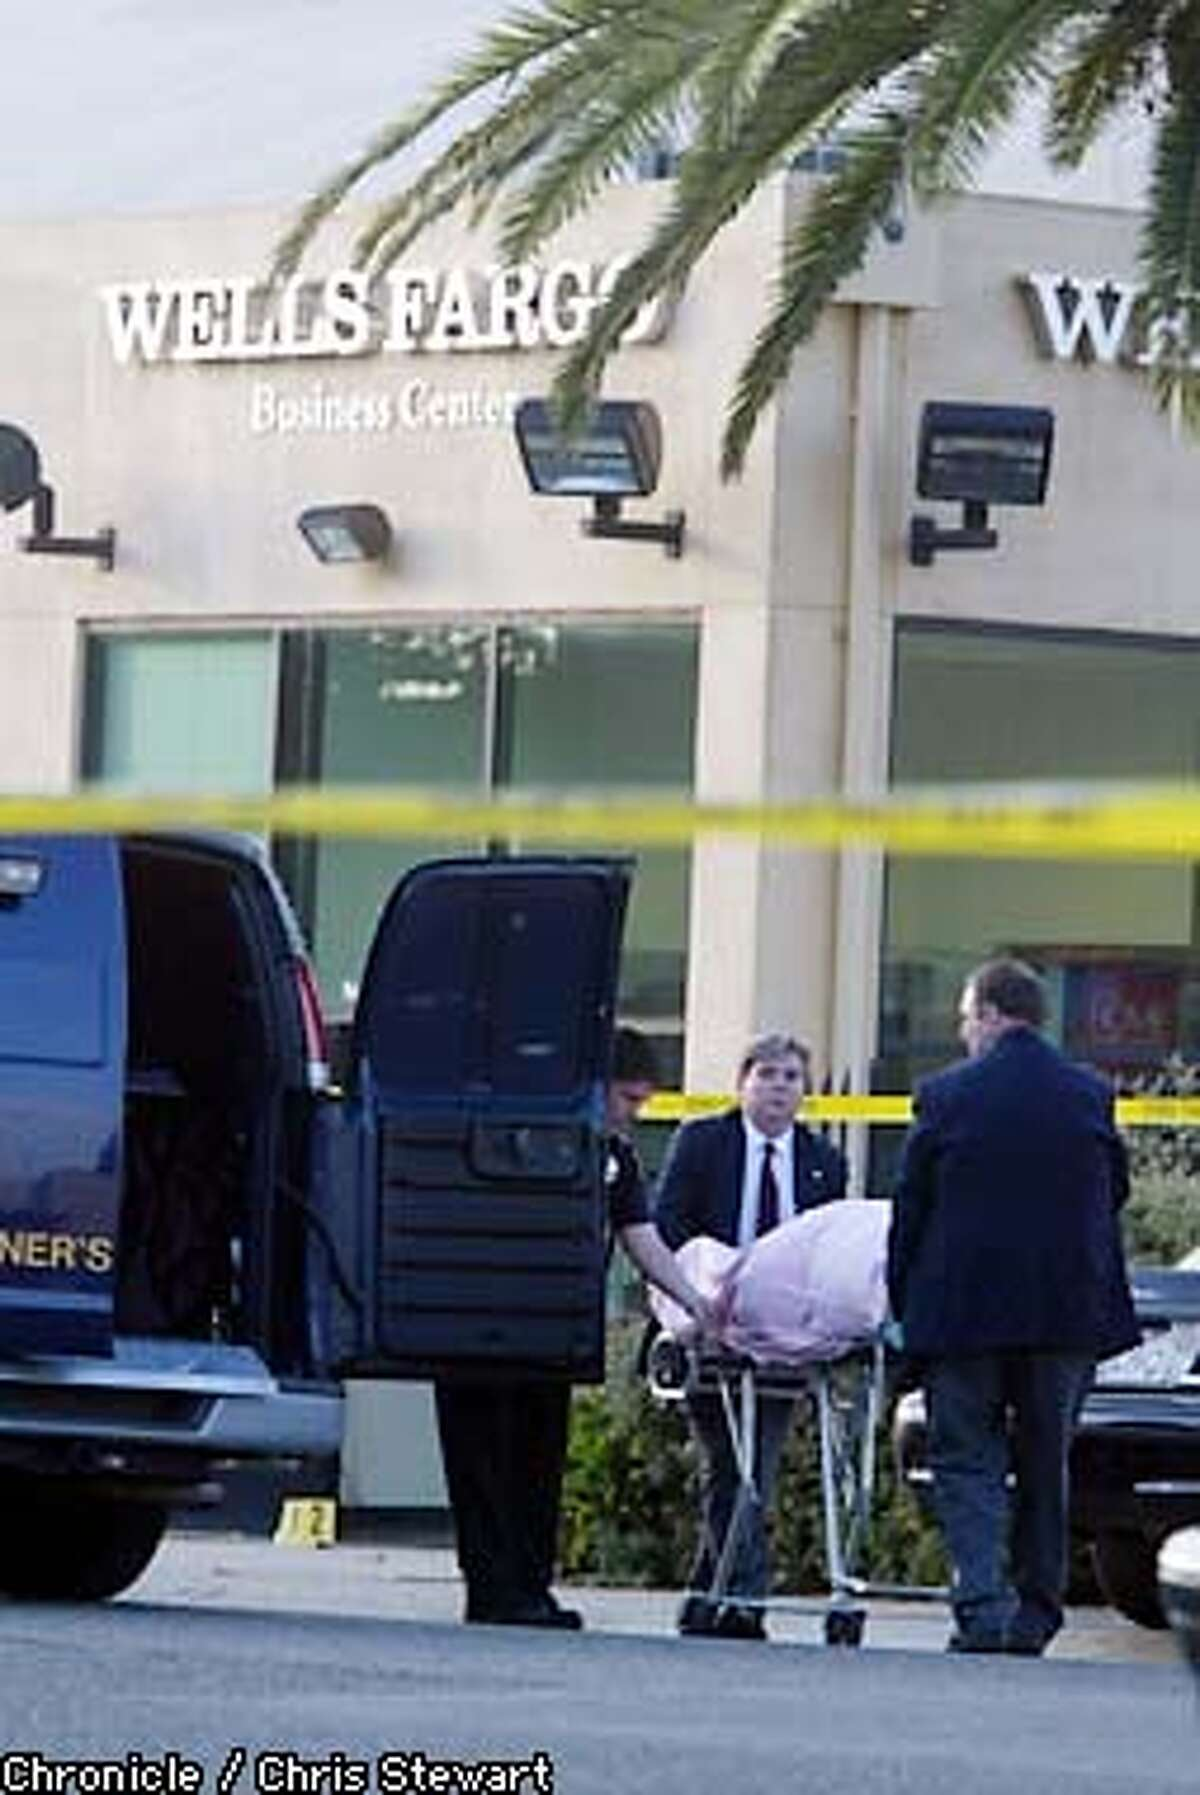 The body of a female Brinks guard is taken to a coroner's van today after gunmen attempted to rob a Brinks truck or a Wells Fargo Business Center near Ninth Street and Ashby Avenue in Berkeley, shooting two Brinks guards. One of the guards died of her wounds at the scene. The gunmen escaped in a white Ford Explorer that they abandoned in a nearby Orchard Supply parking lot. BY CHRIS STEWART/THE CHRONICLE